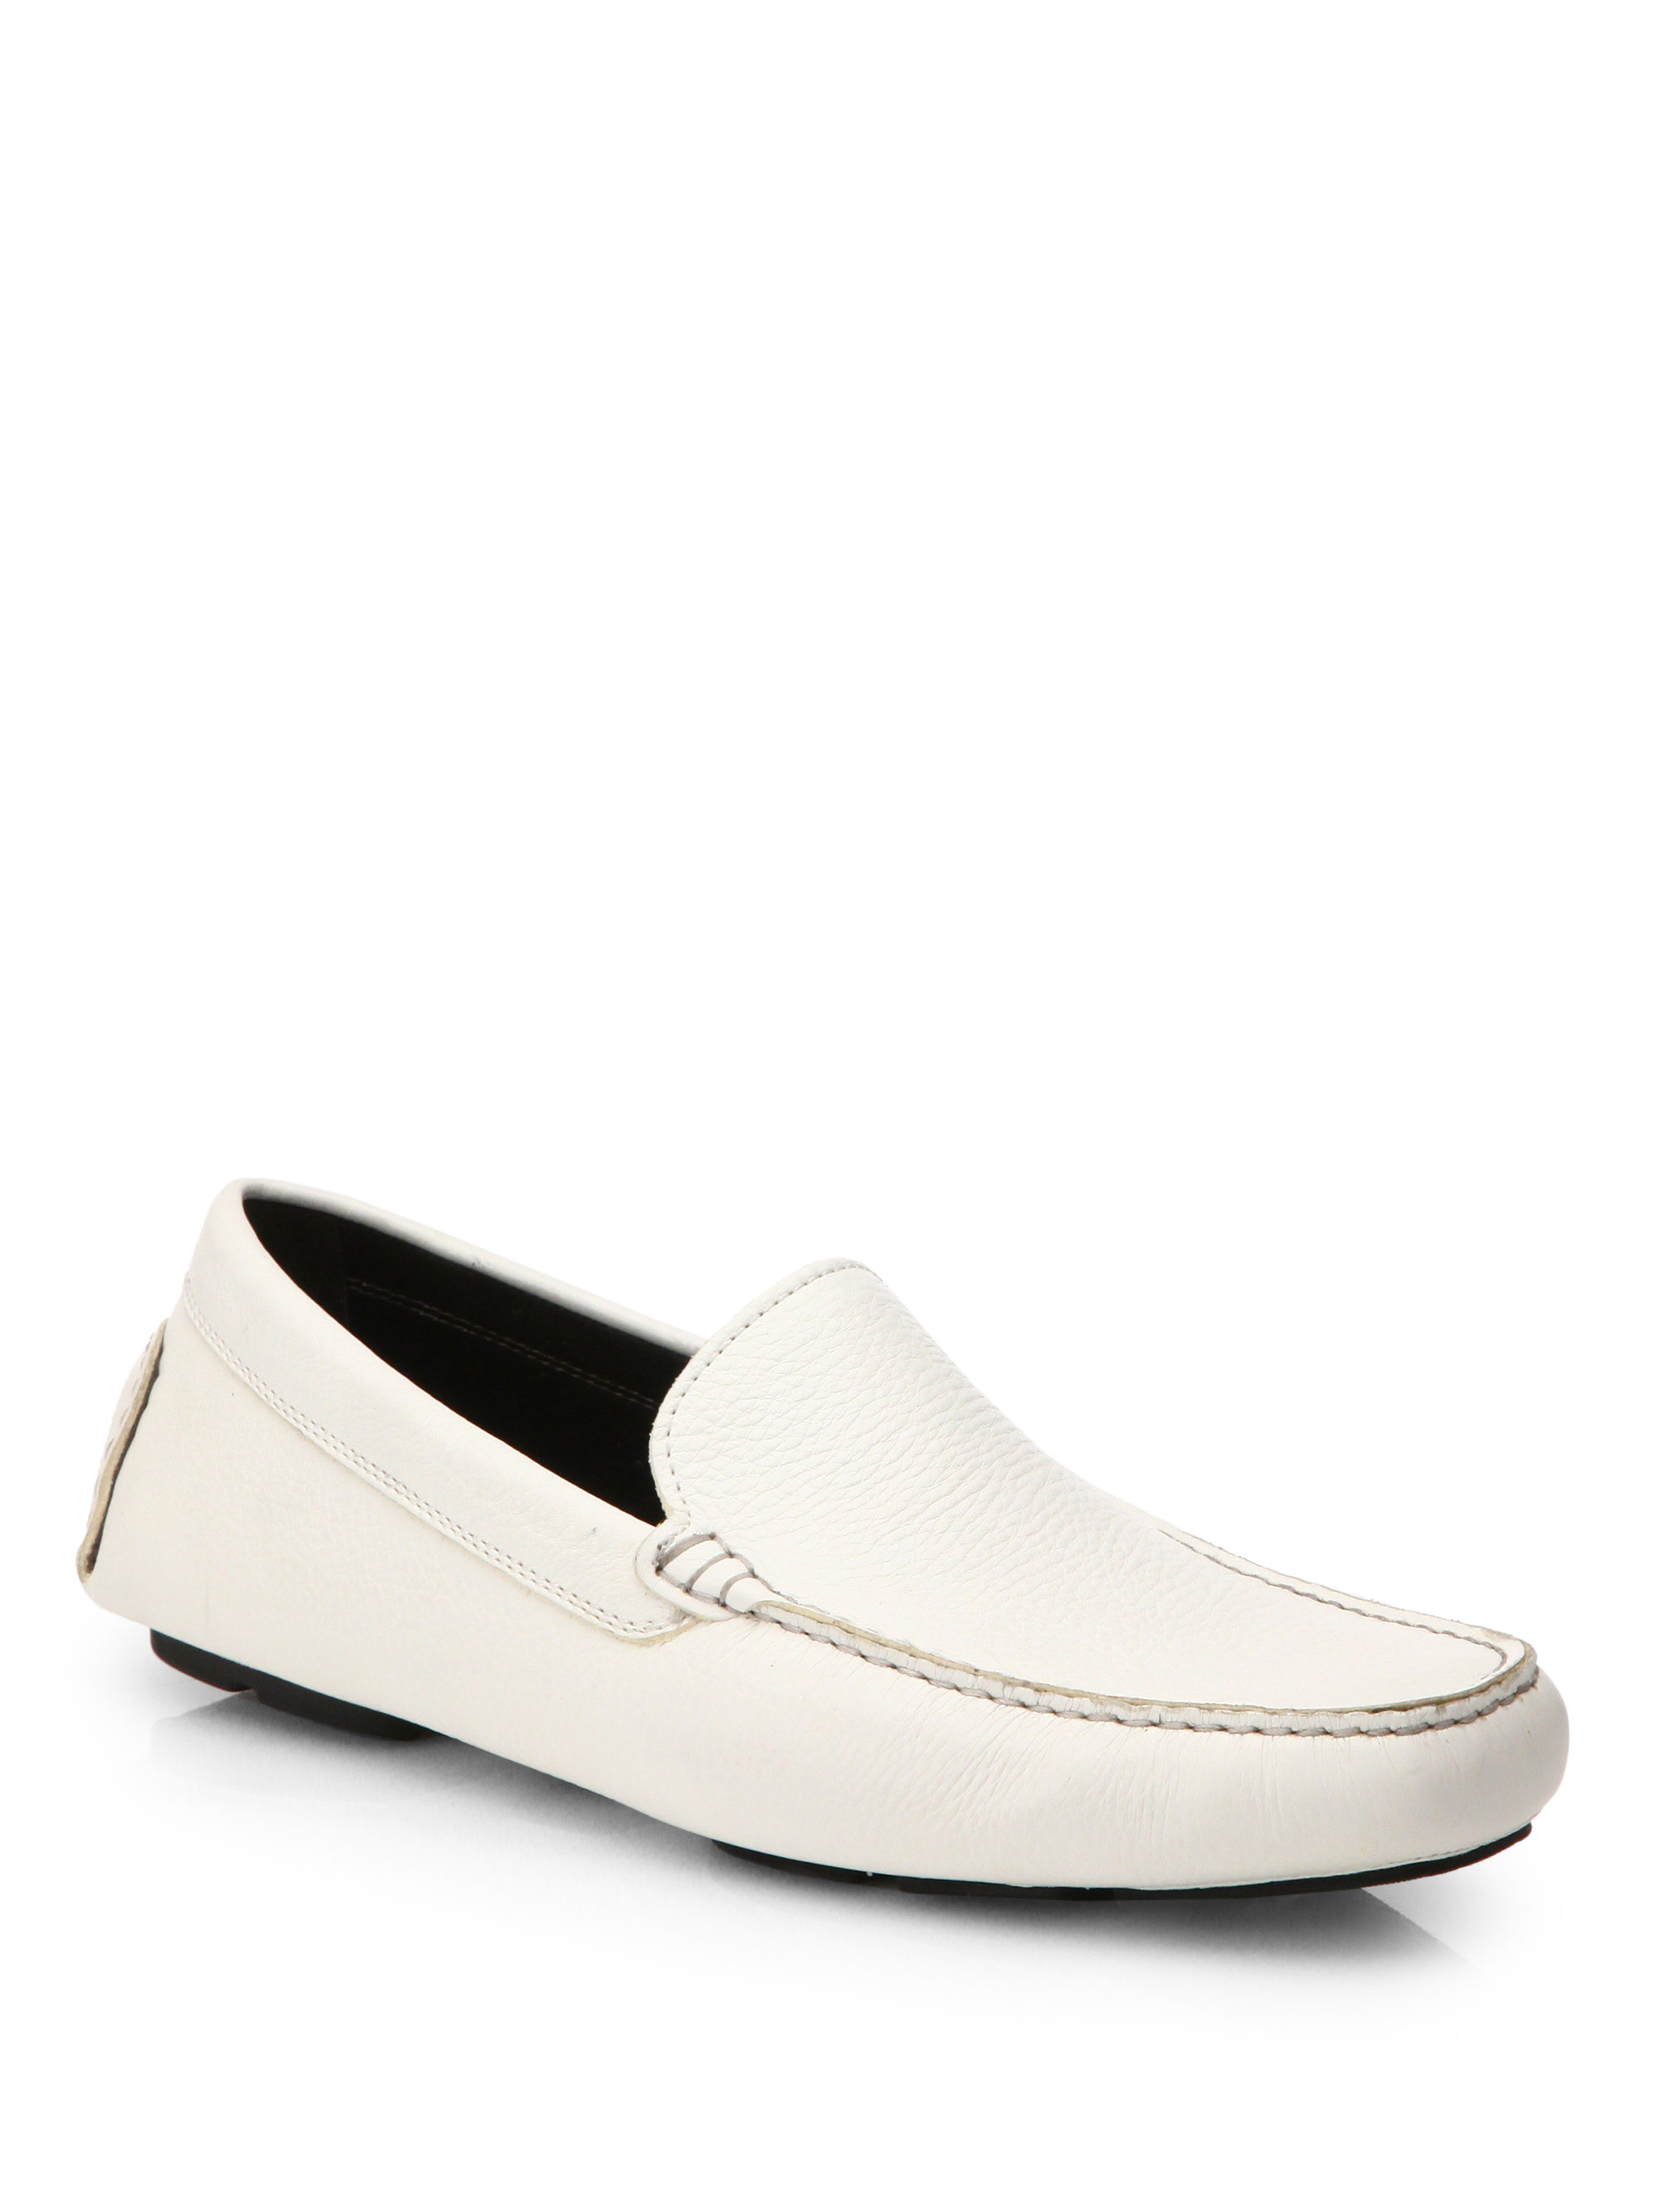 To Boot Pebbled Leather Driving Moccasins In White For Men